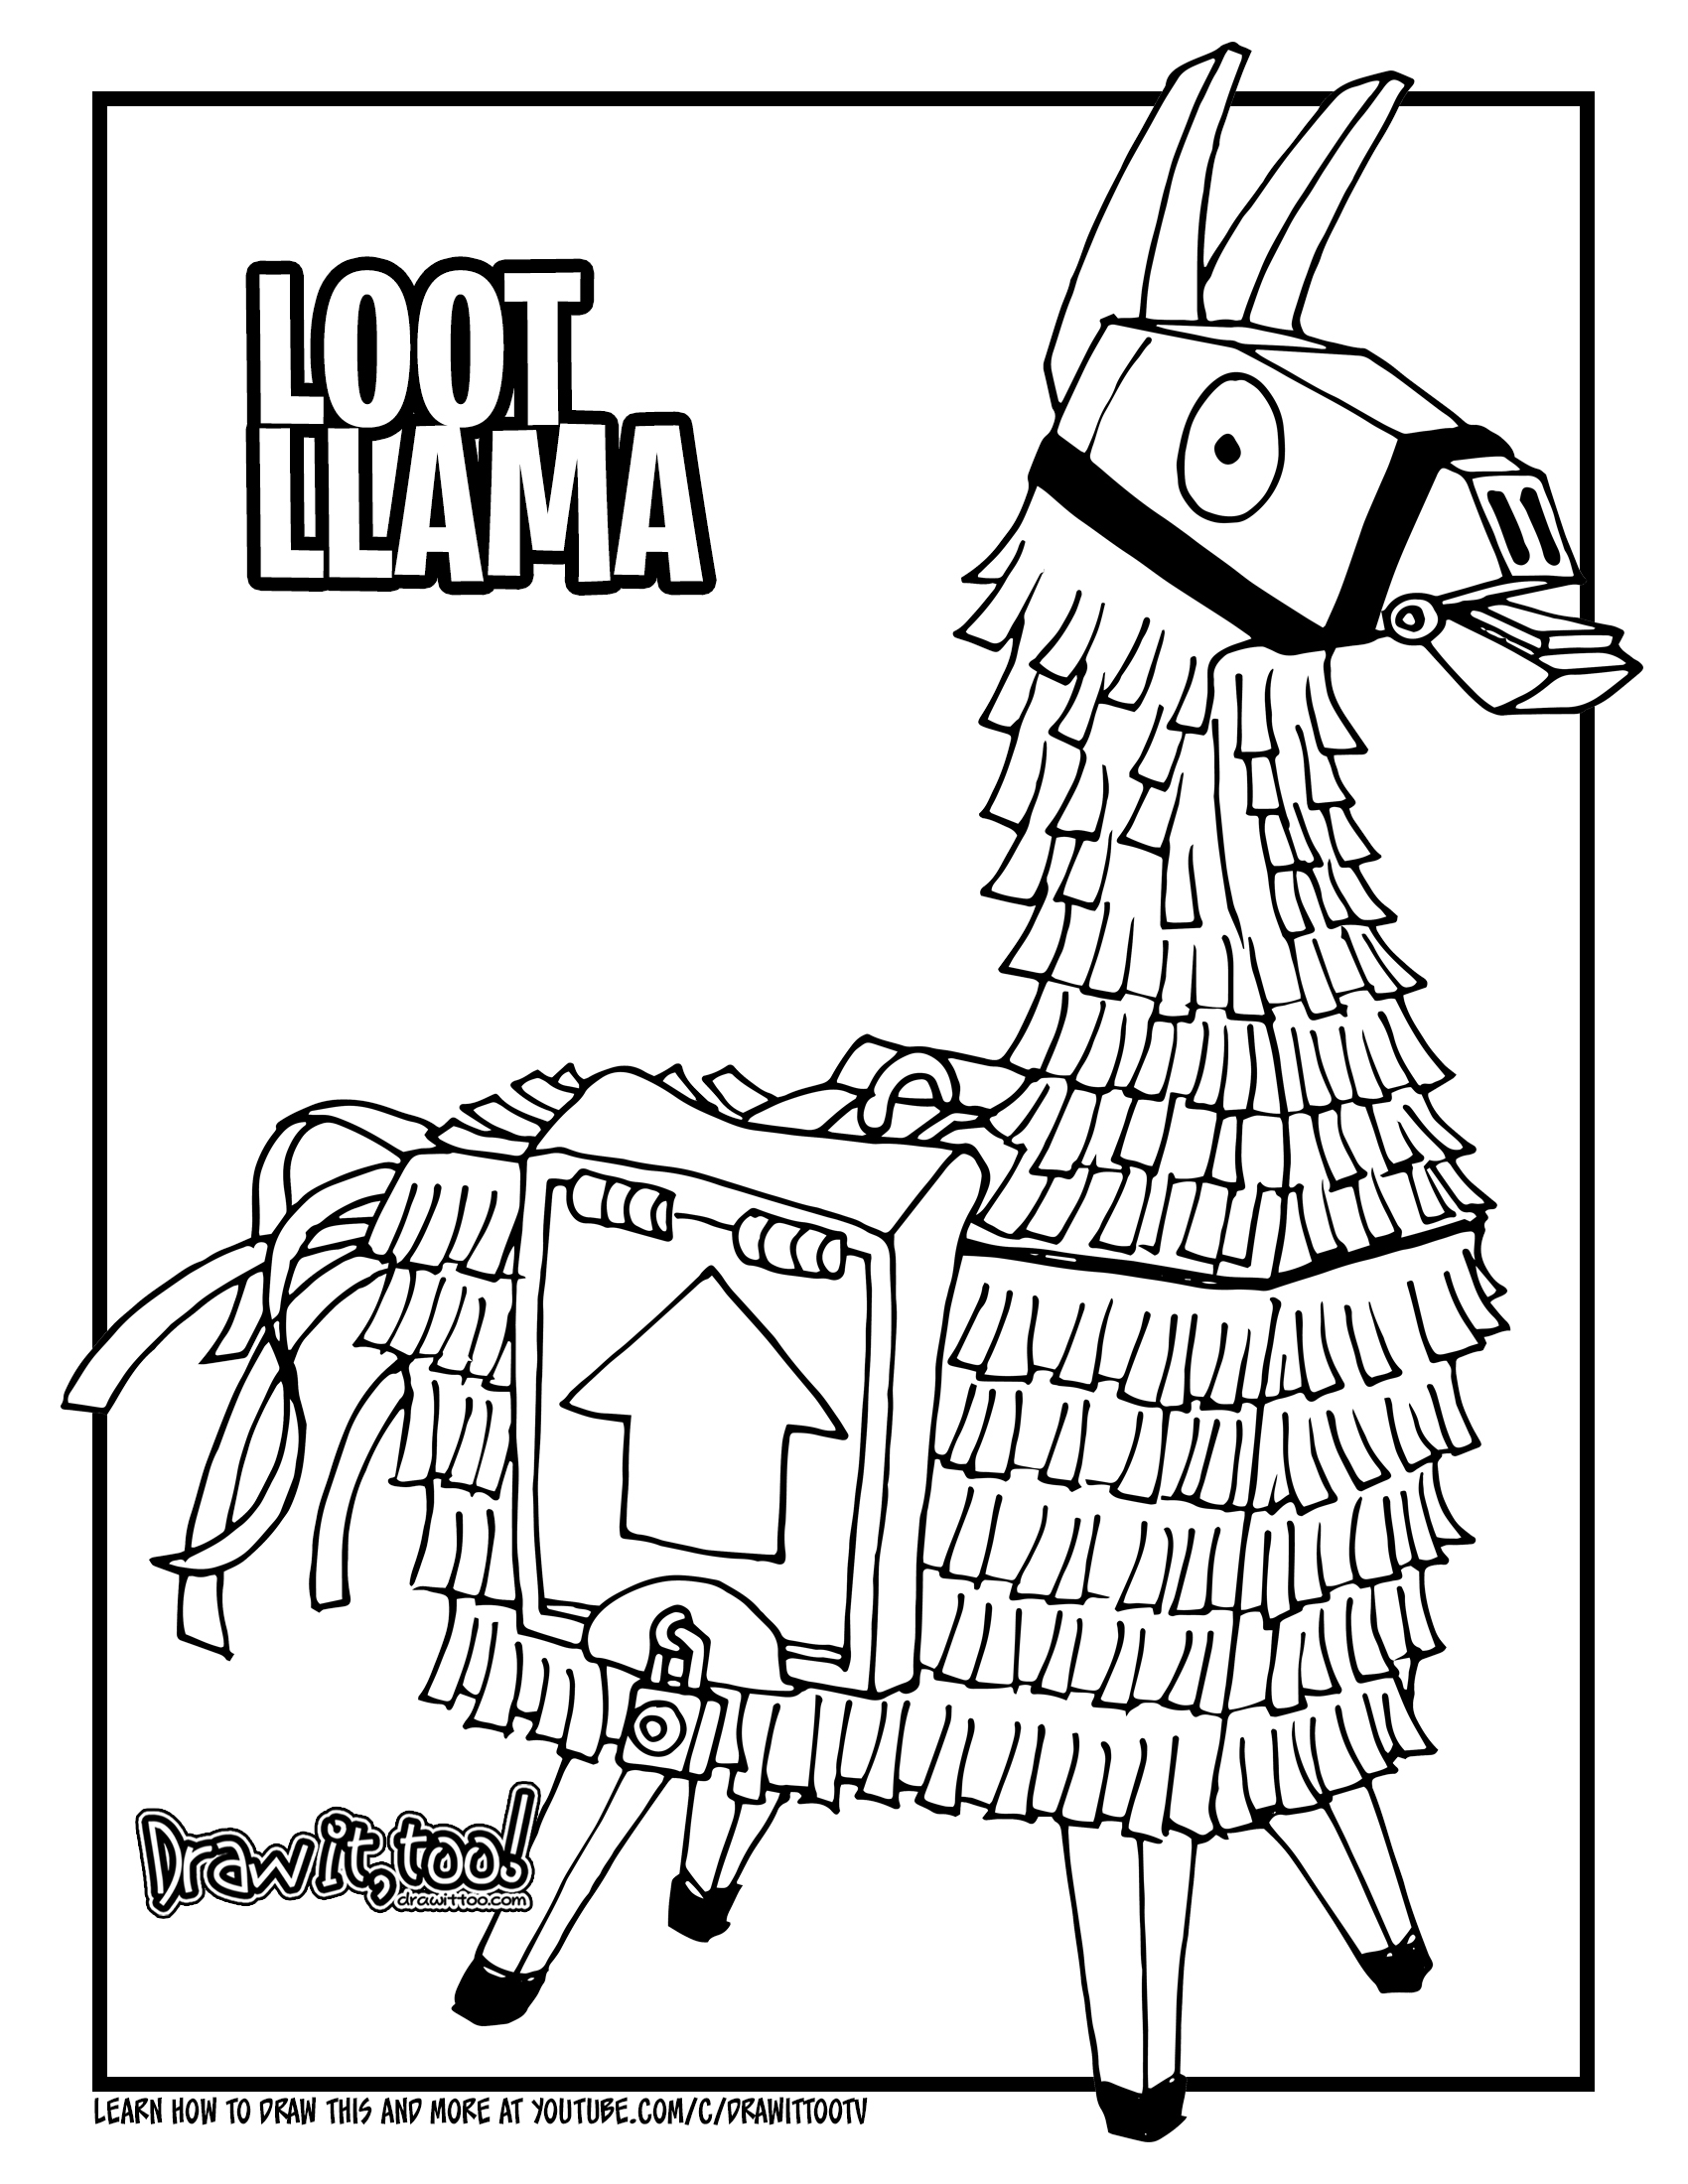 How to Draw the LOOT LLAMA Fortnite